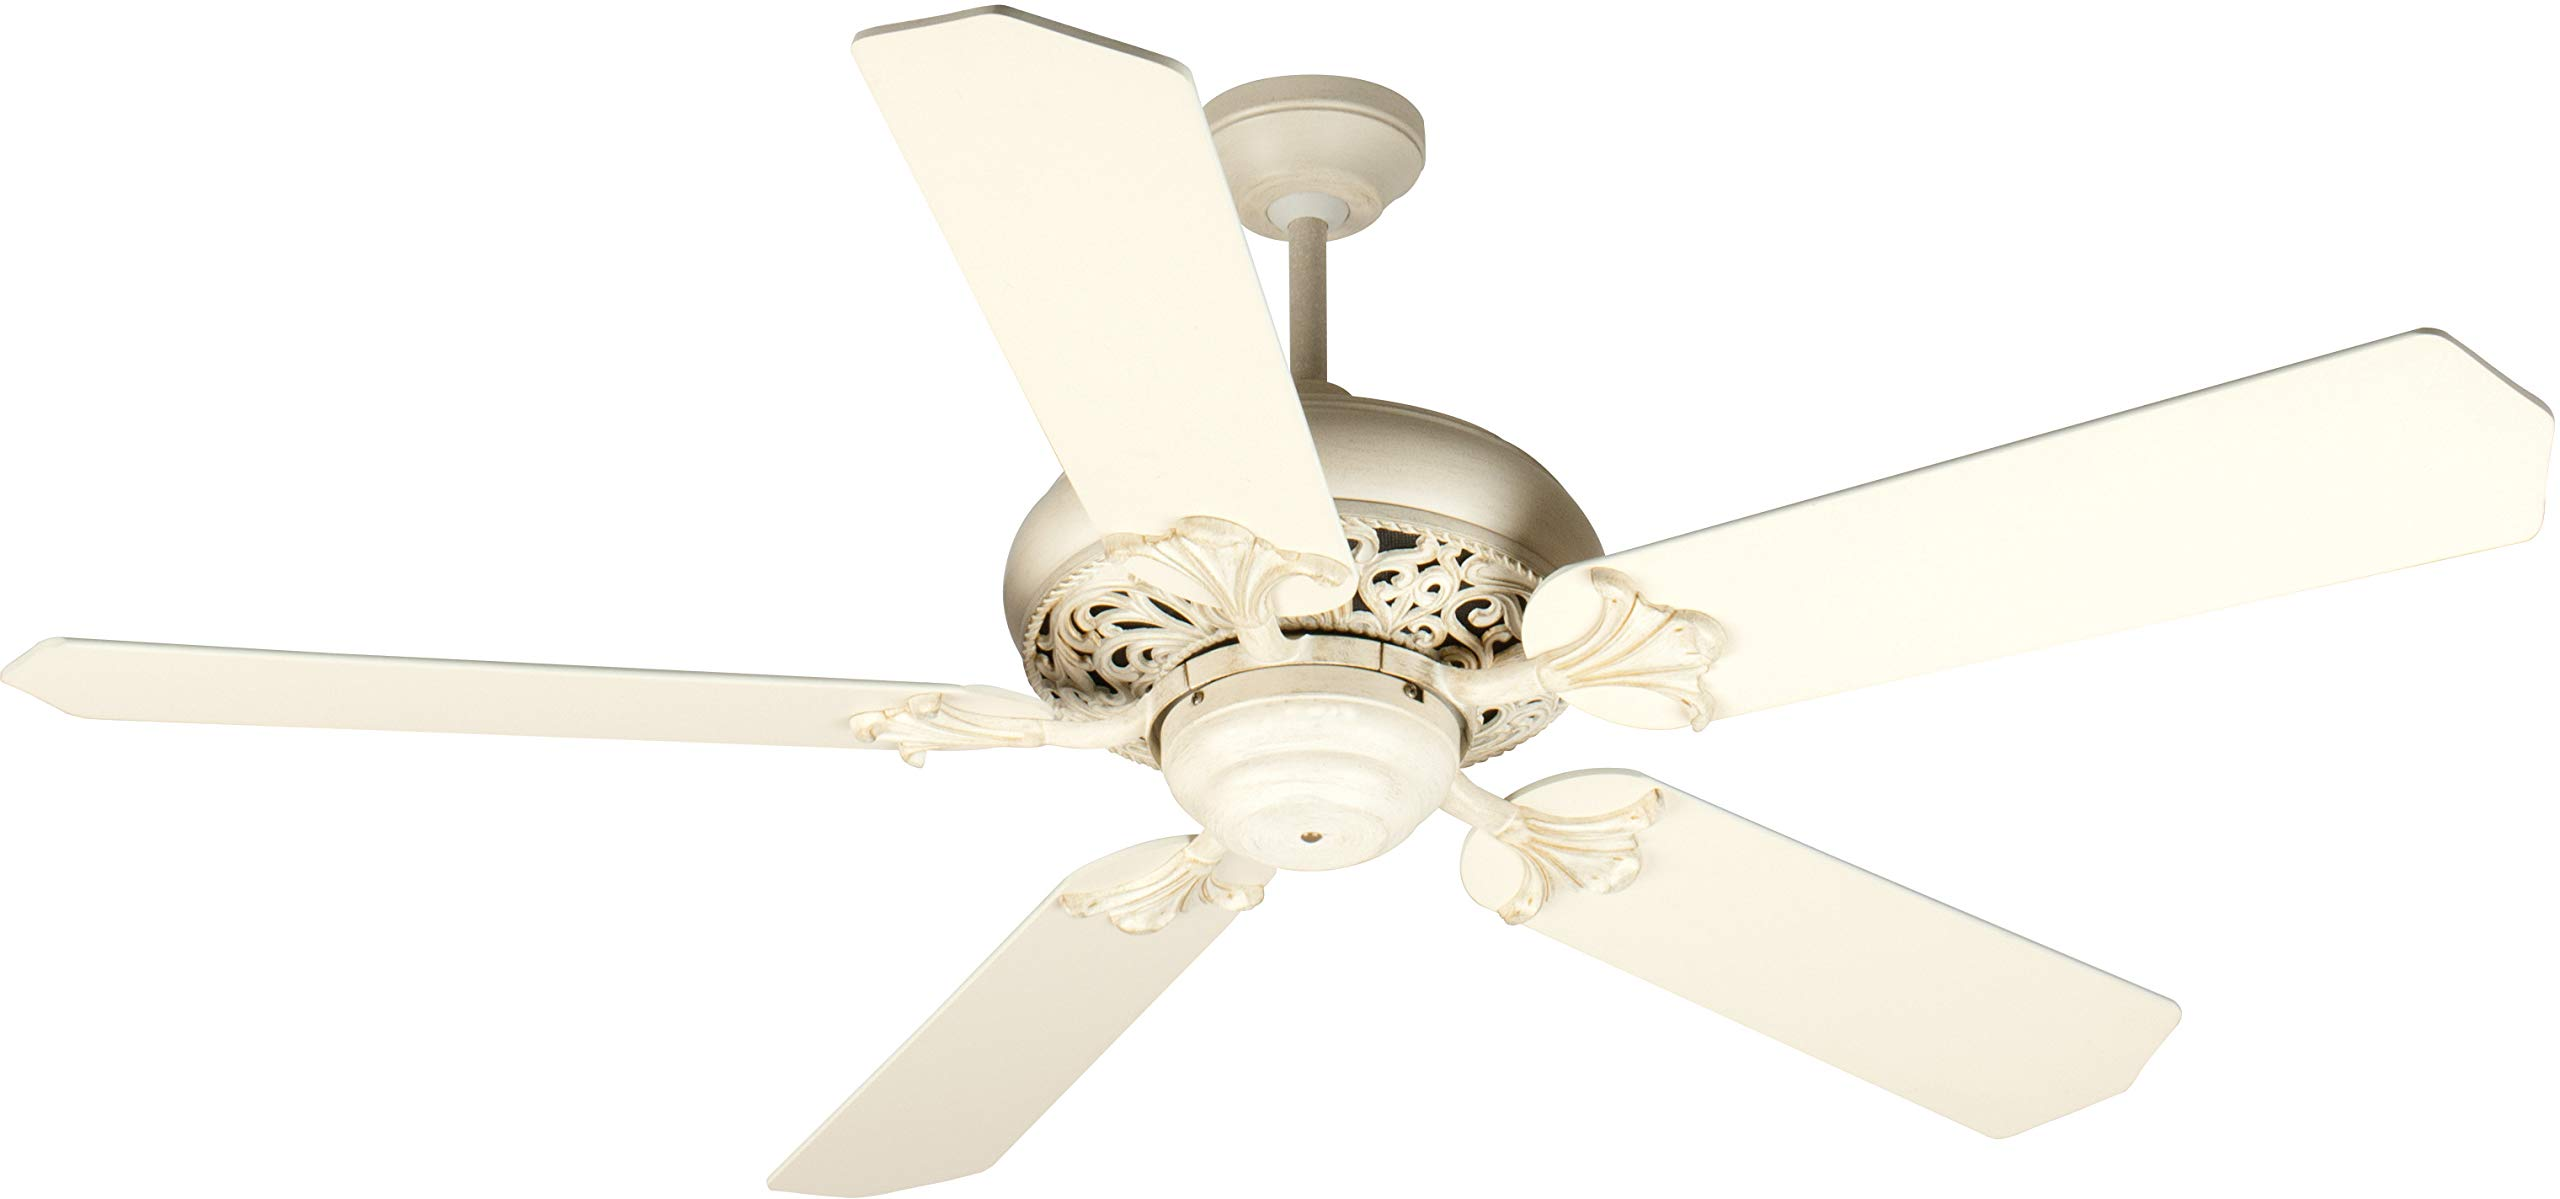 Craftmade K10325 Mia 52'' Ceiling Fan with CFL Lights and Pull Chain, Antique White Distressed